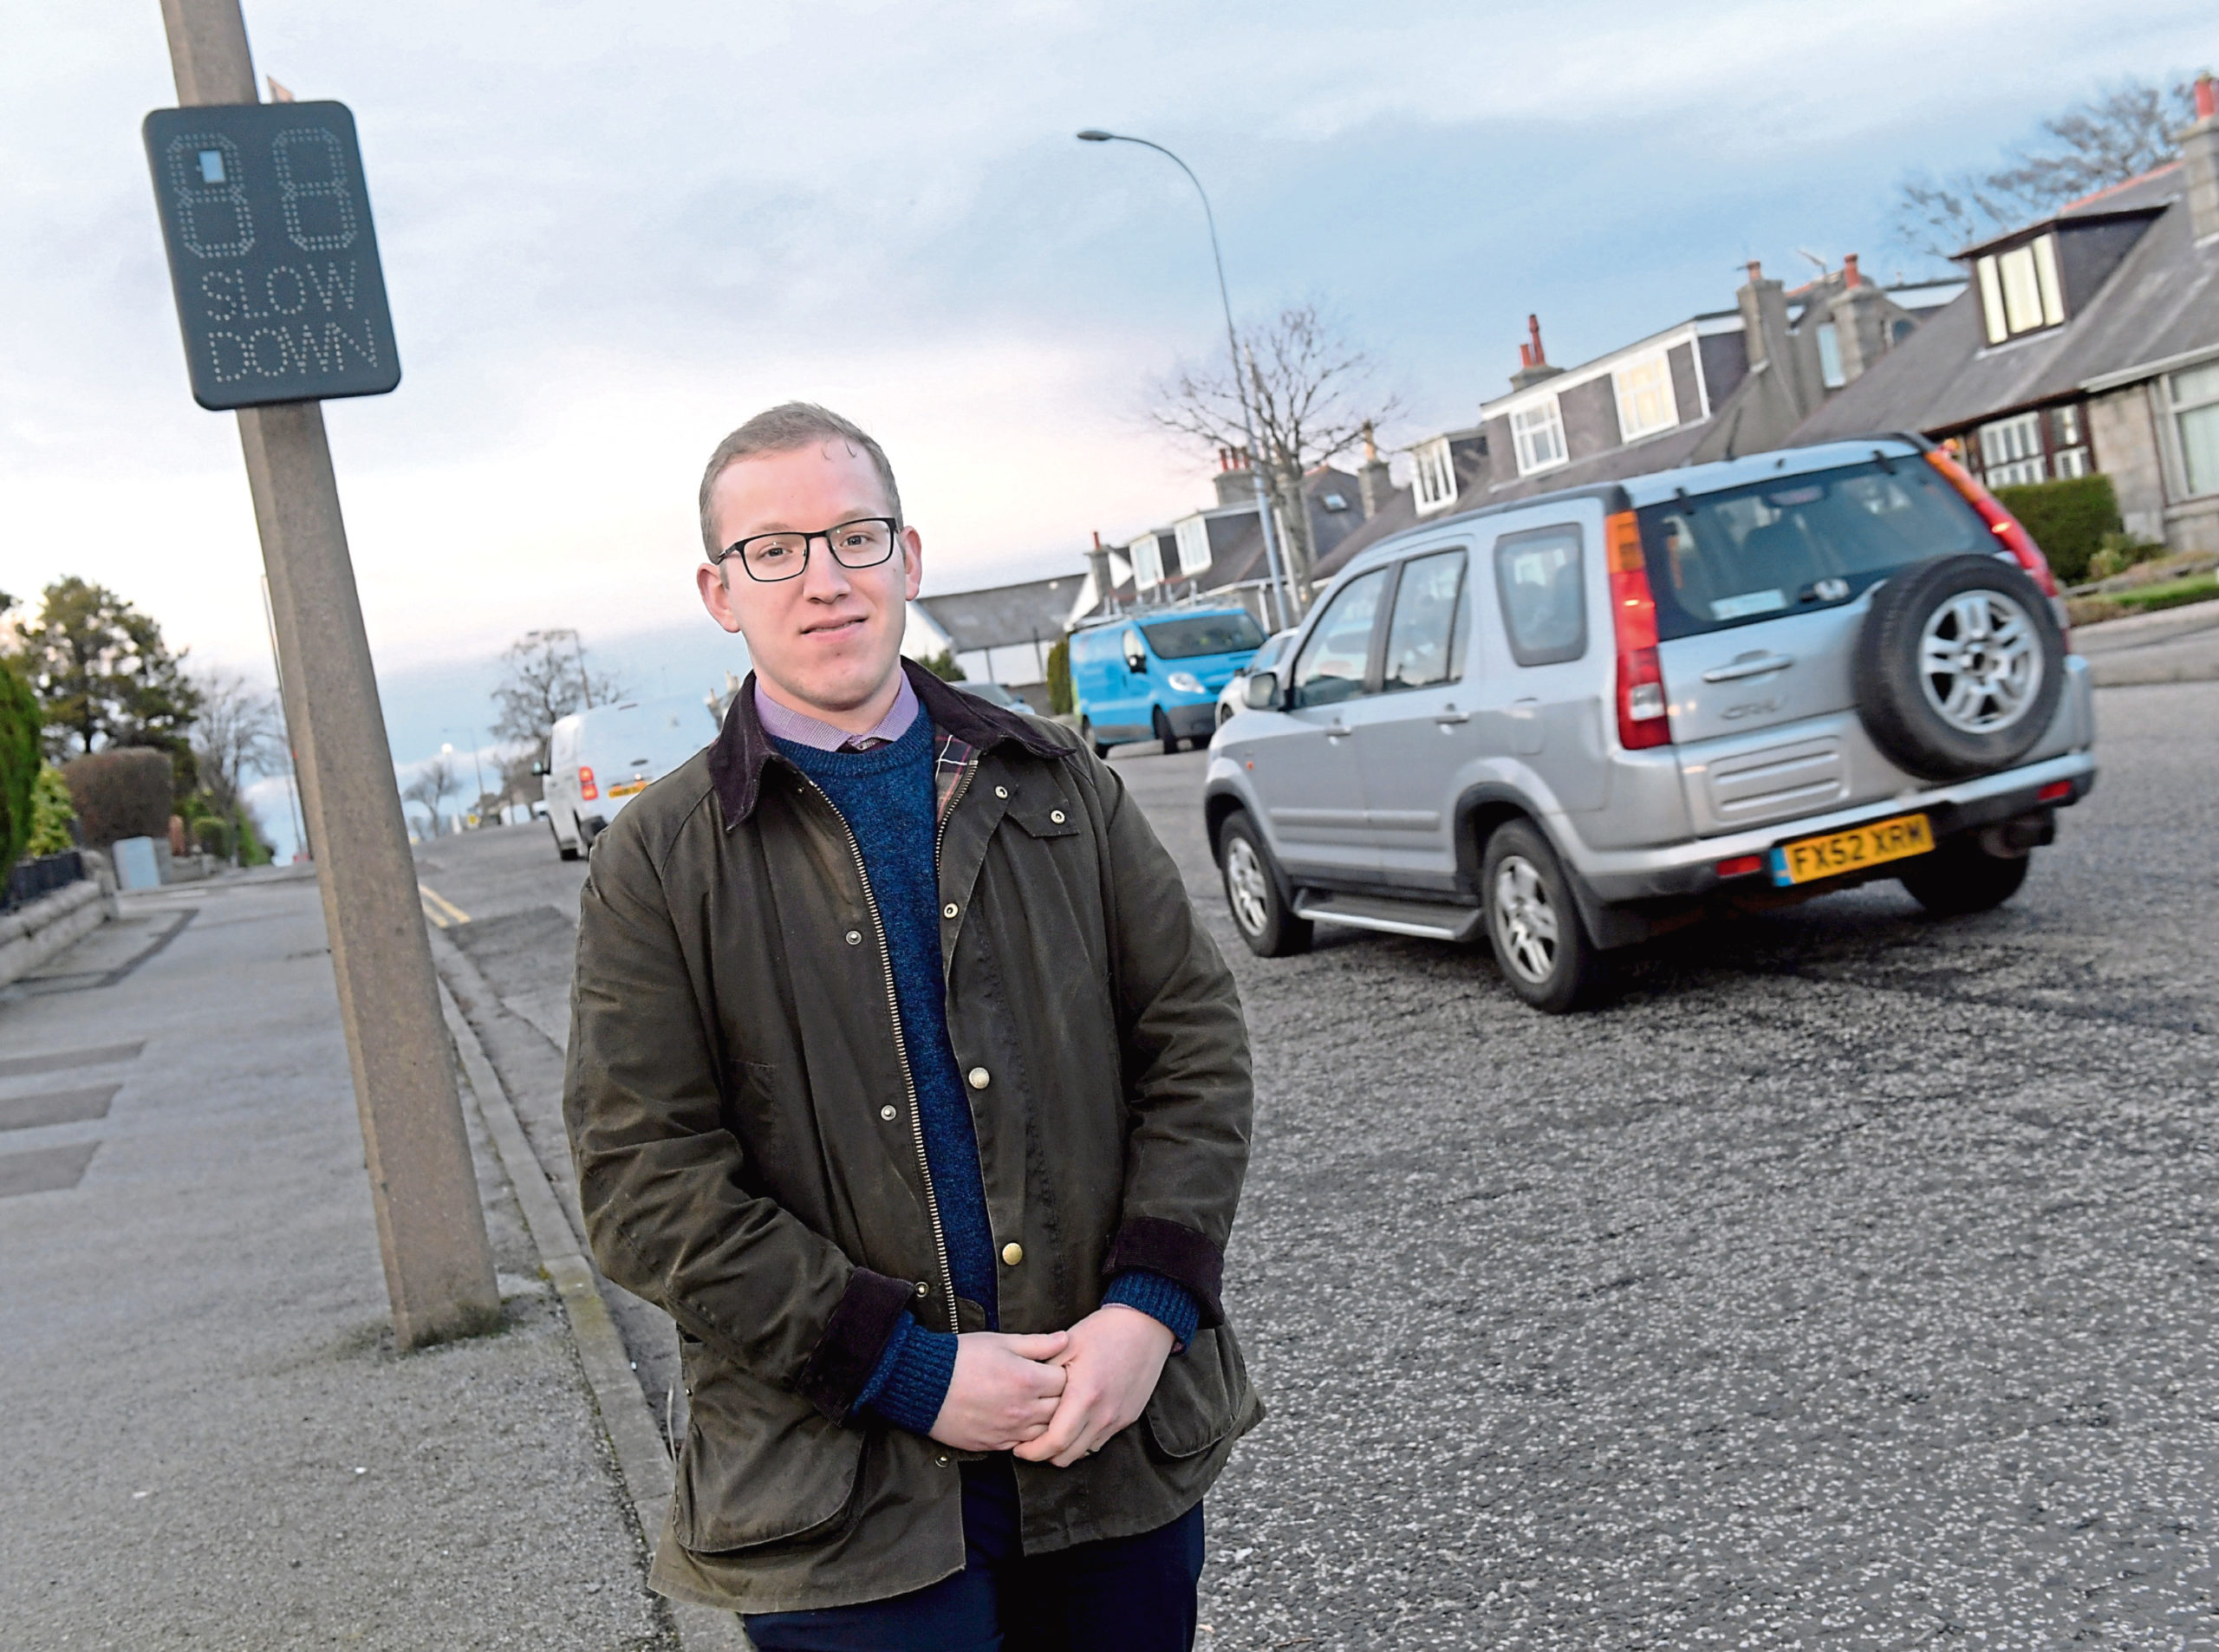 The council has installed vehicle-activated signs on Hilton Drive, which will be switched on next week, in response to concerns from residents and Cllr Freddie John. CR0019738 21/02/20 Picture by KATH FLANNERY